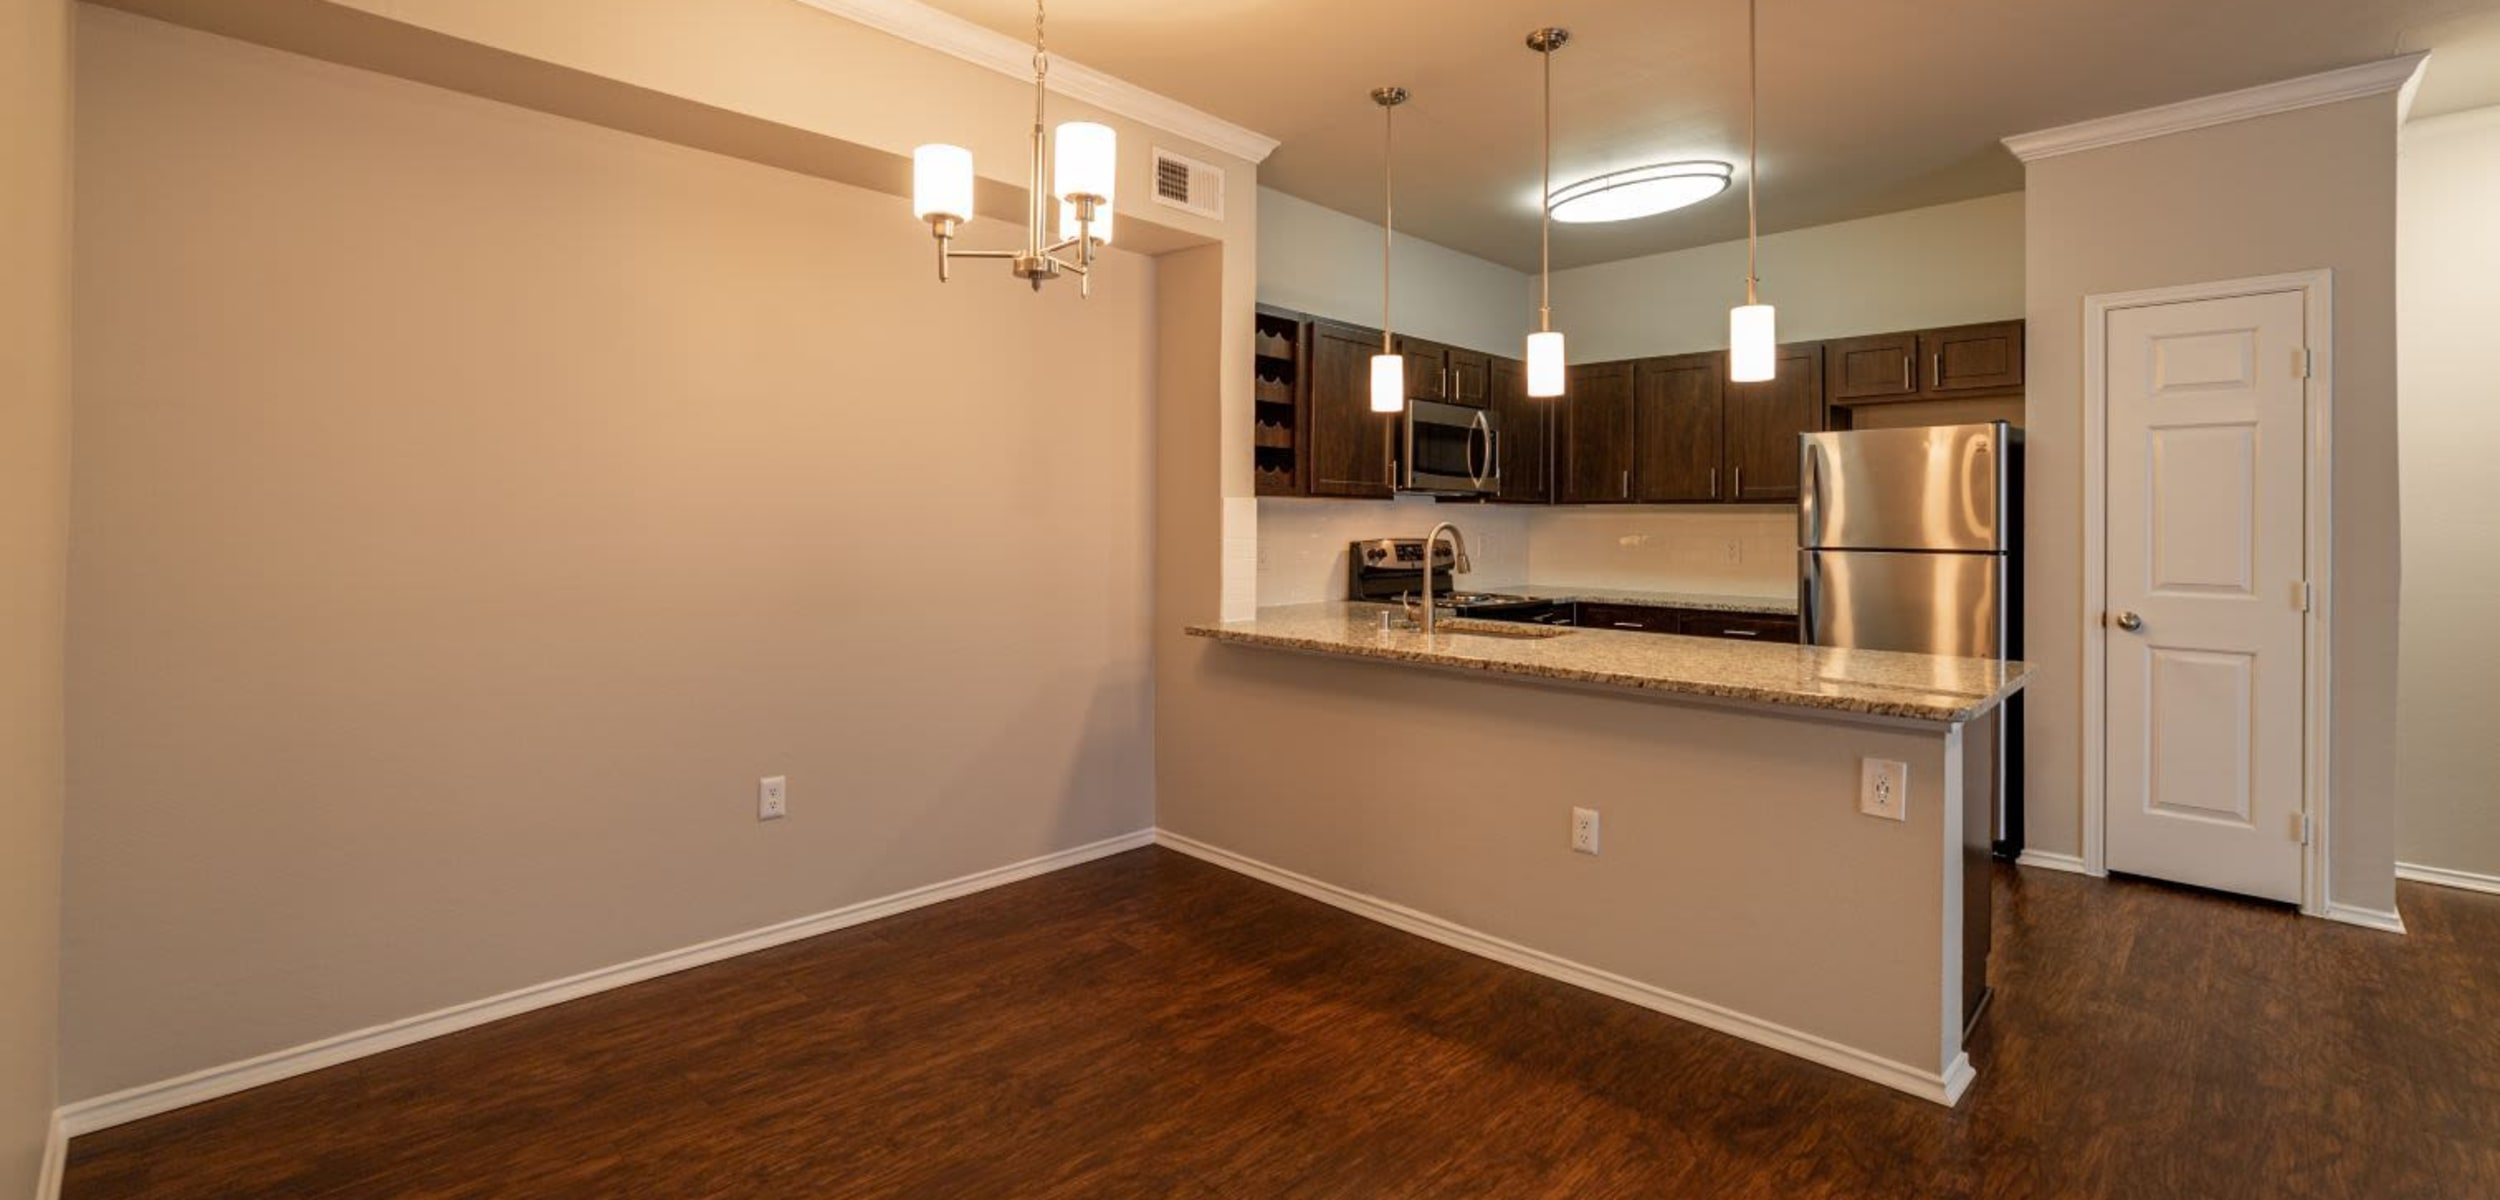 Dining area and kitchen with wood style floors at Marquis at Stonebriar in Frisco, Texas